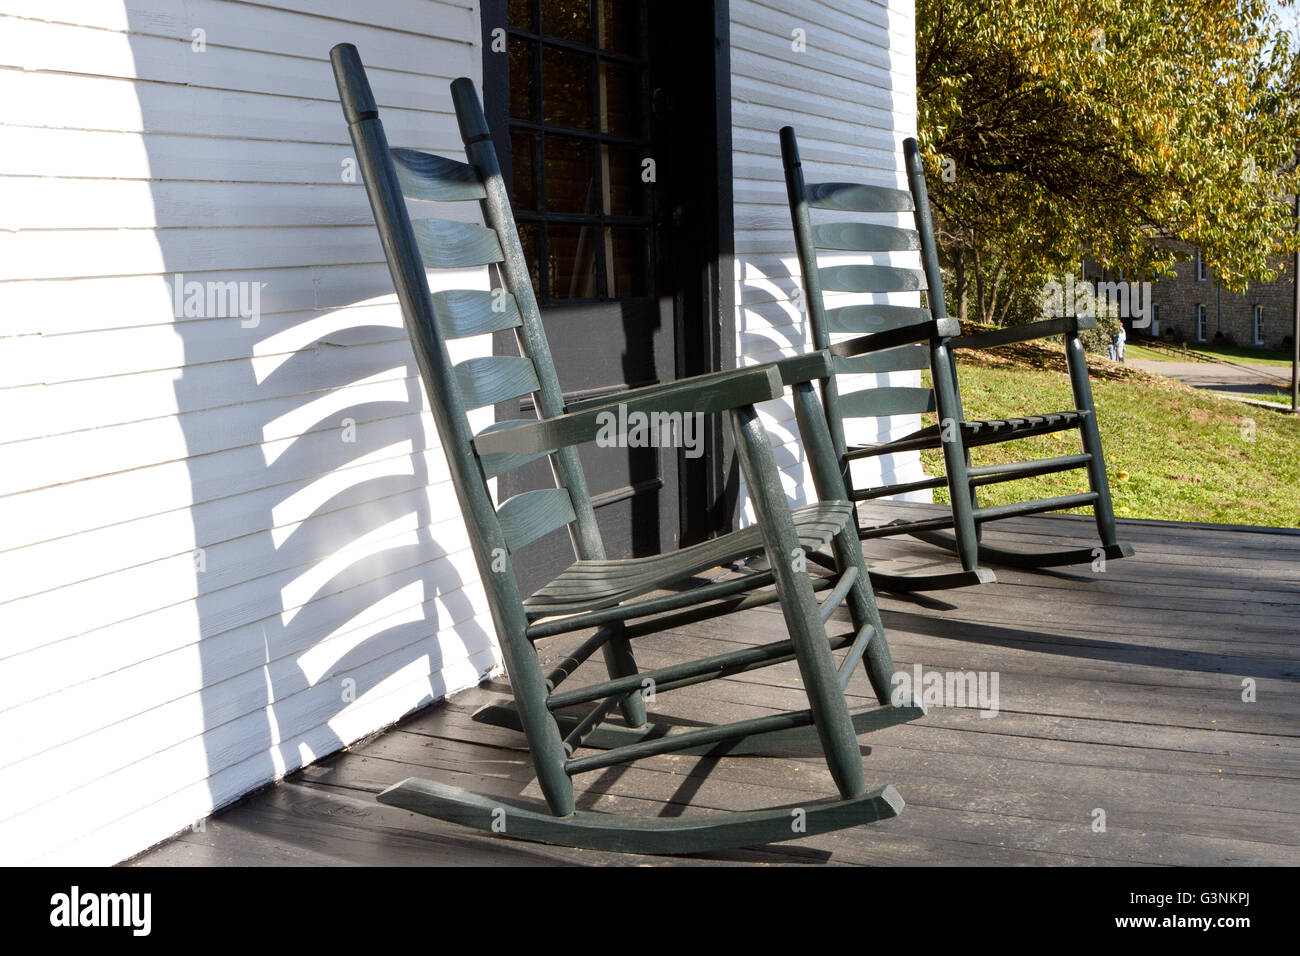 Traditional wood rocking chairs on the front porch - Stock Image